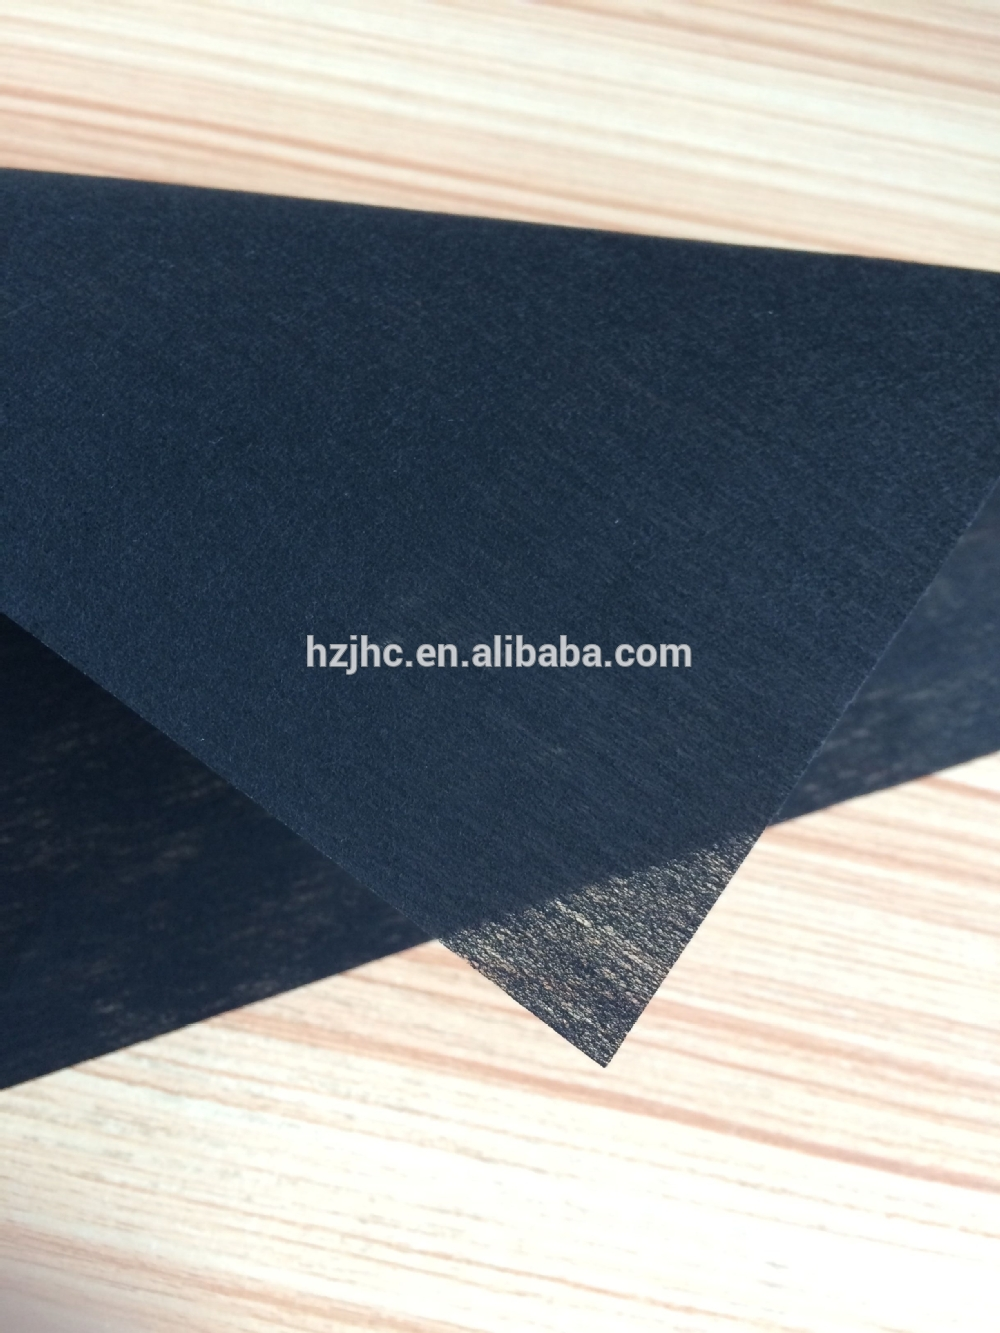 Nonwoven fabric fusible garments interlining accessories felt